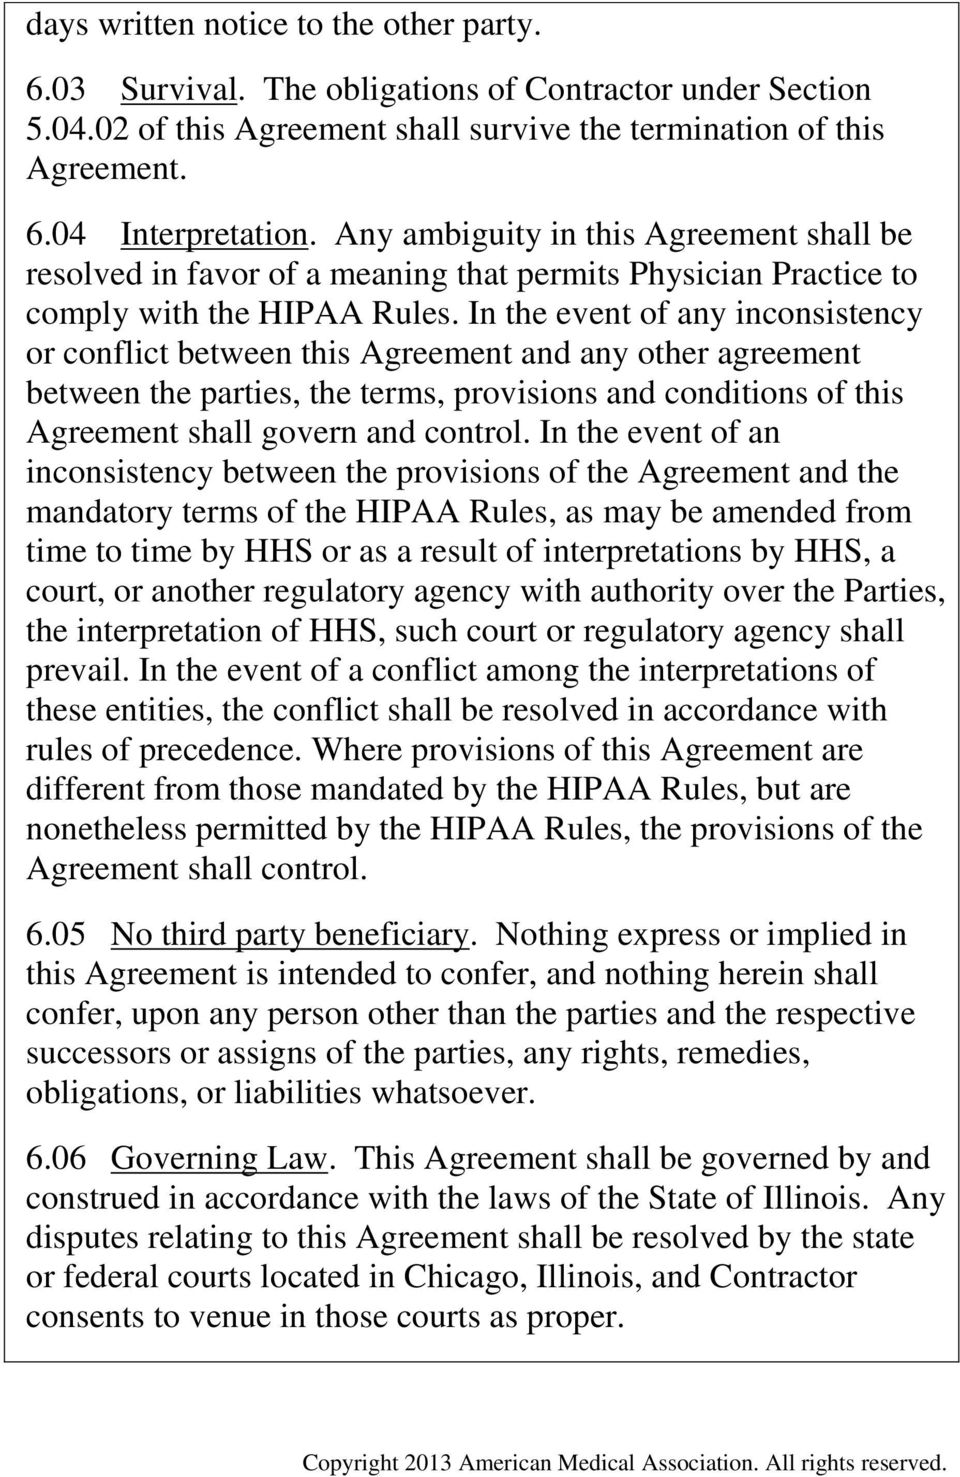 In the event of any inconsistency or conflict between this Agreement and any other agreement between the parties, the terms, provisions and conditions of this Agreement shall govern and control.